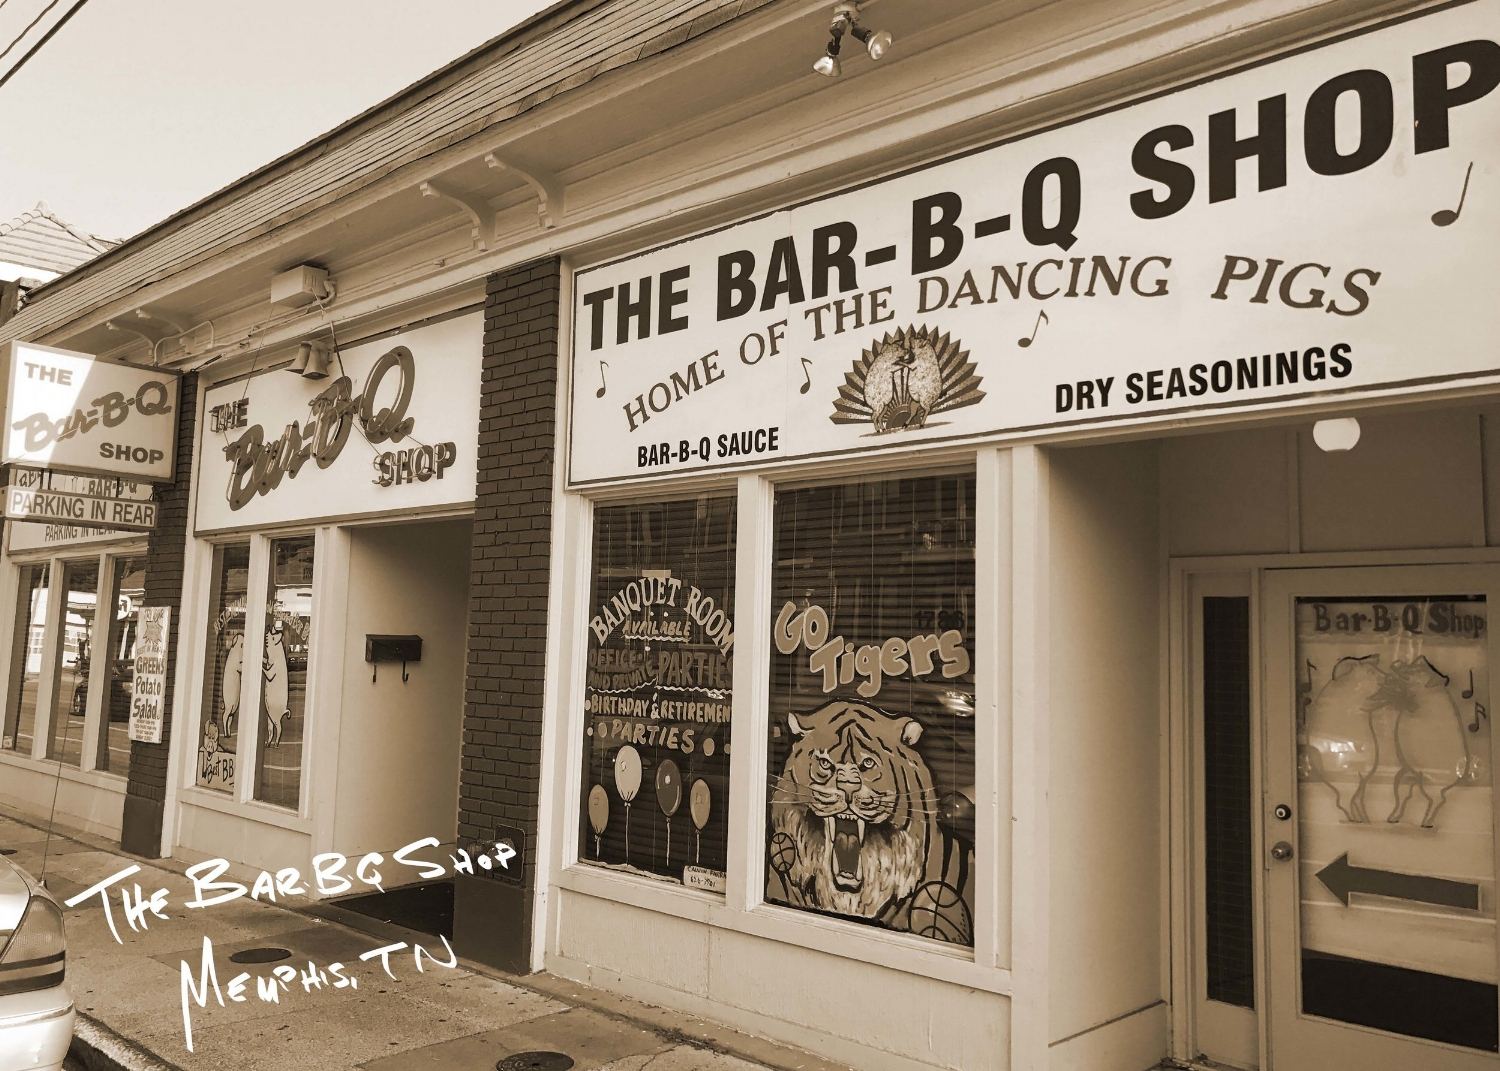 Hugh Baby's_The Bar-B-Q Shop.jpg